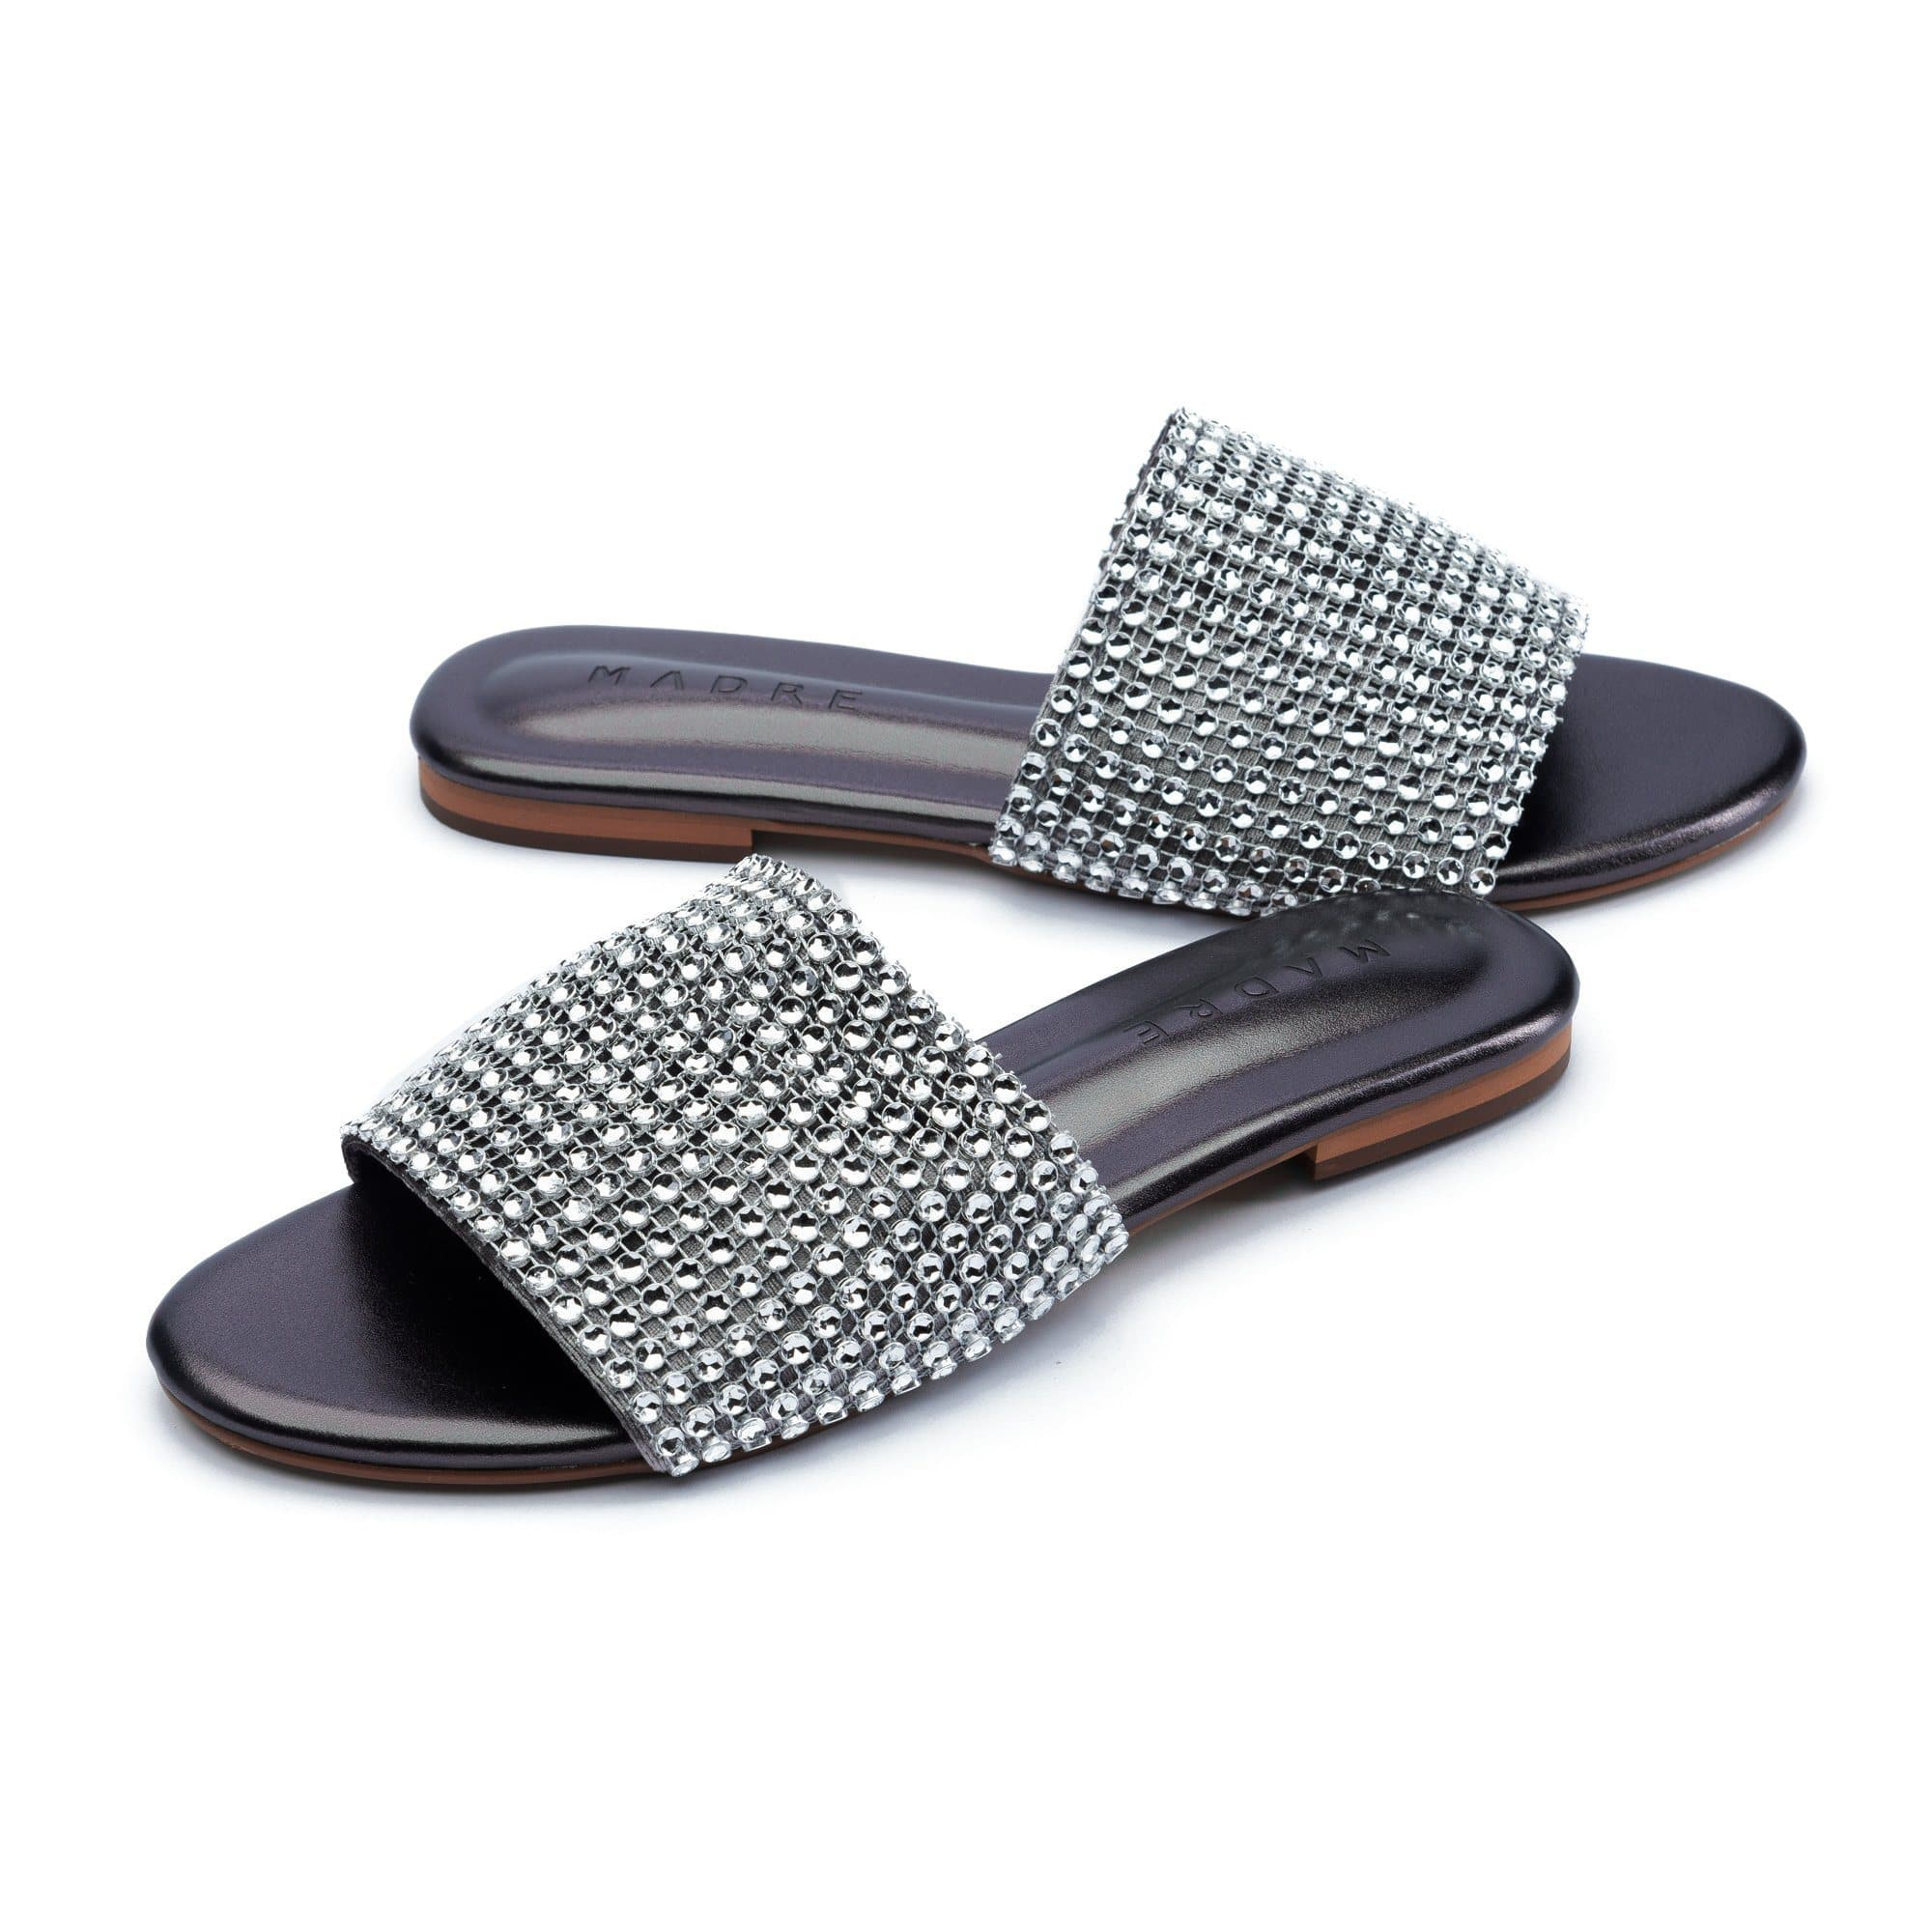 Gamora Flat Shoes Madre Collection 36 Silver